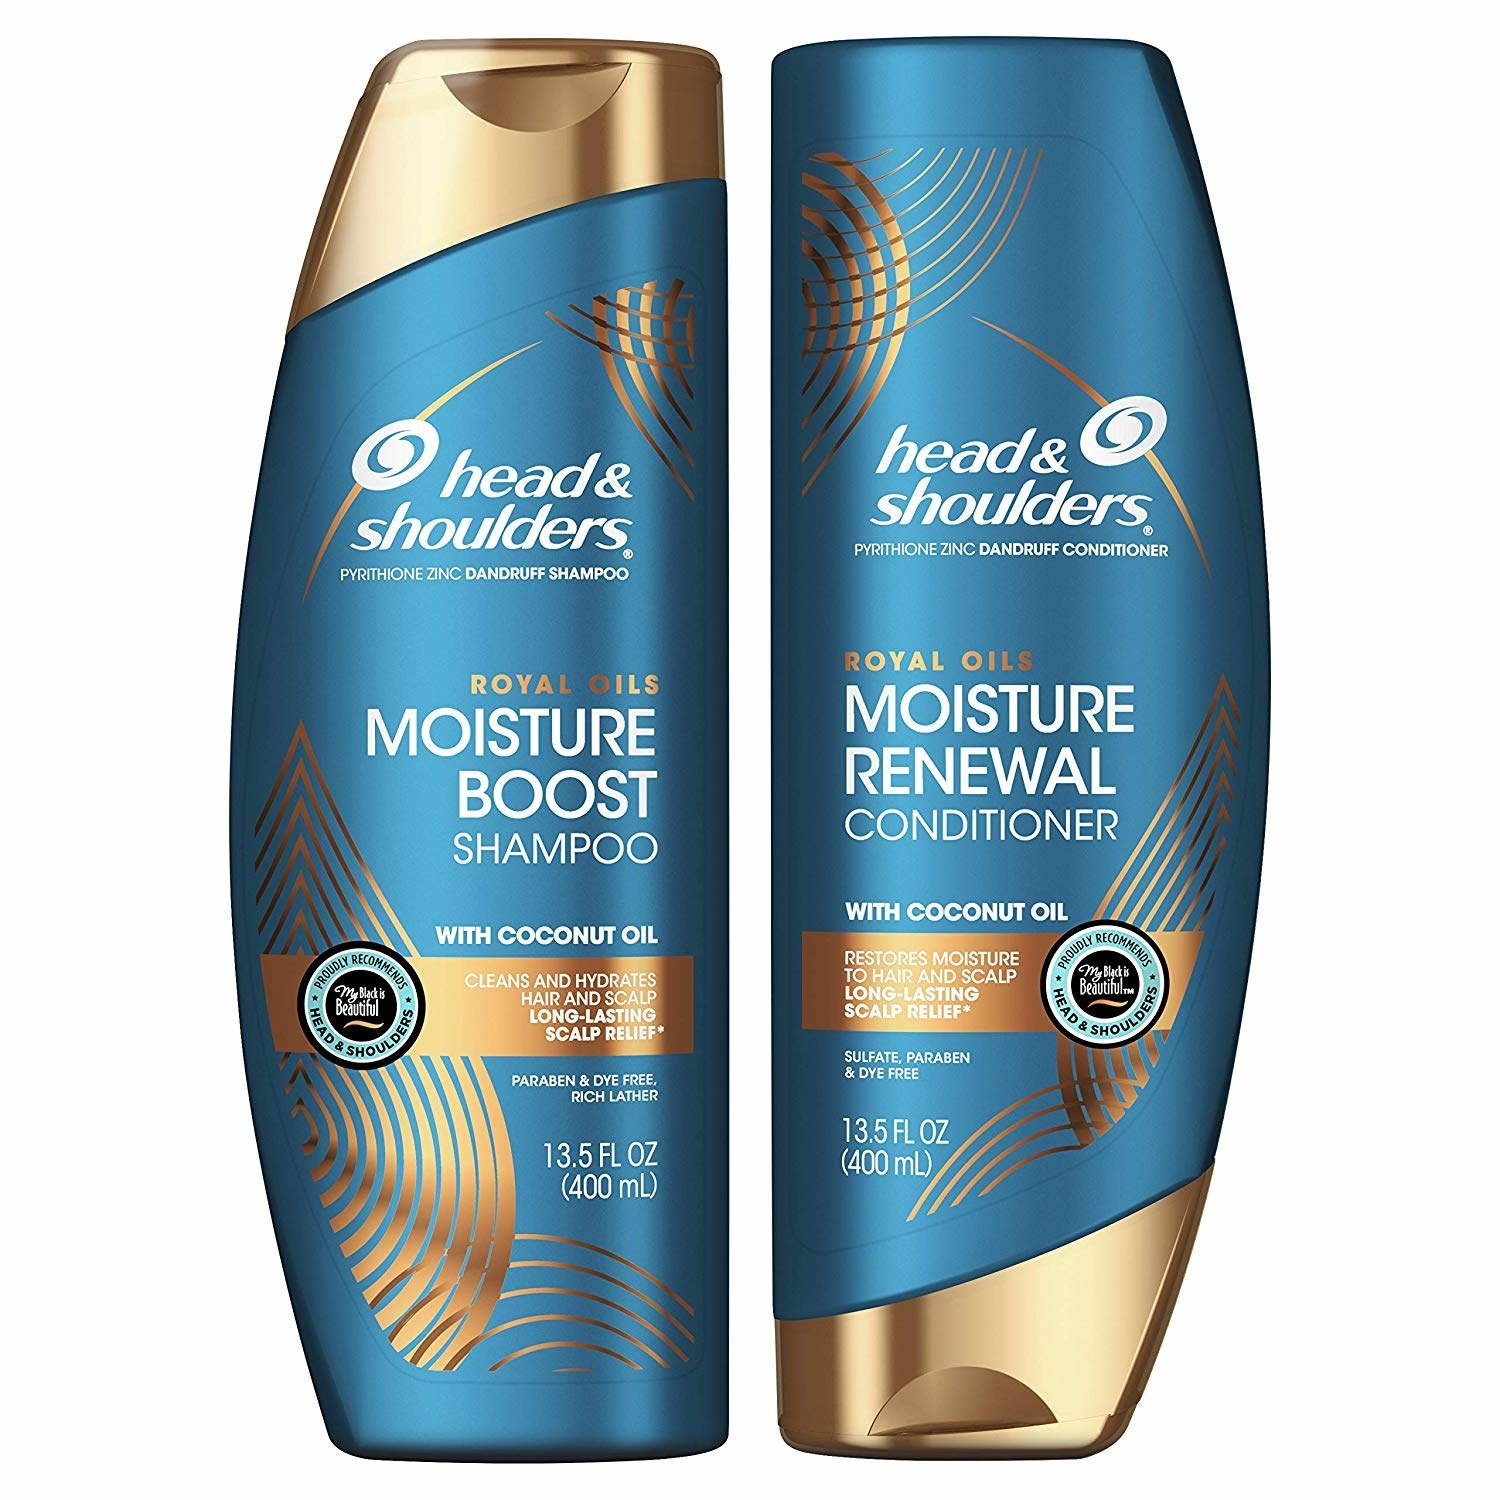 18 Of The Best Shampoo And Conditioner Sets You Can Get On Amazon